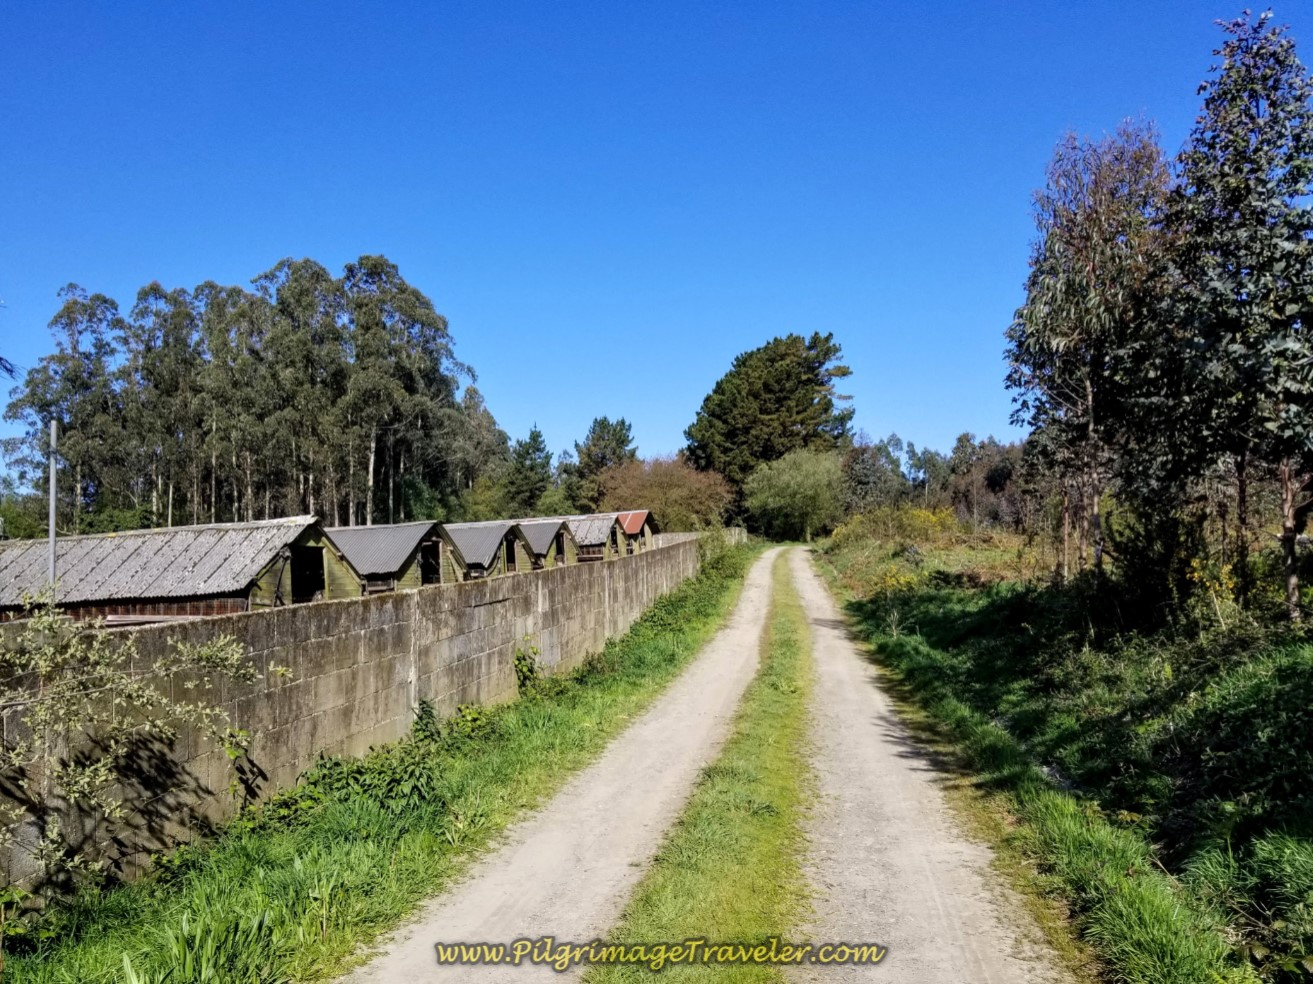 Pass By Old Chicken Houses on day six of the Camino Inglés